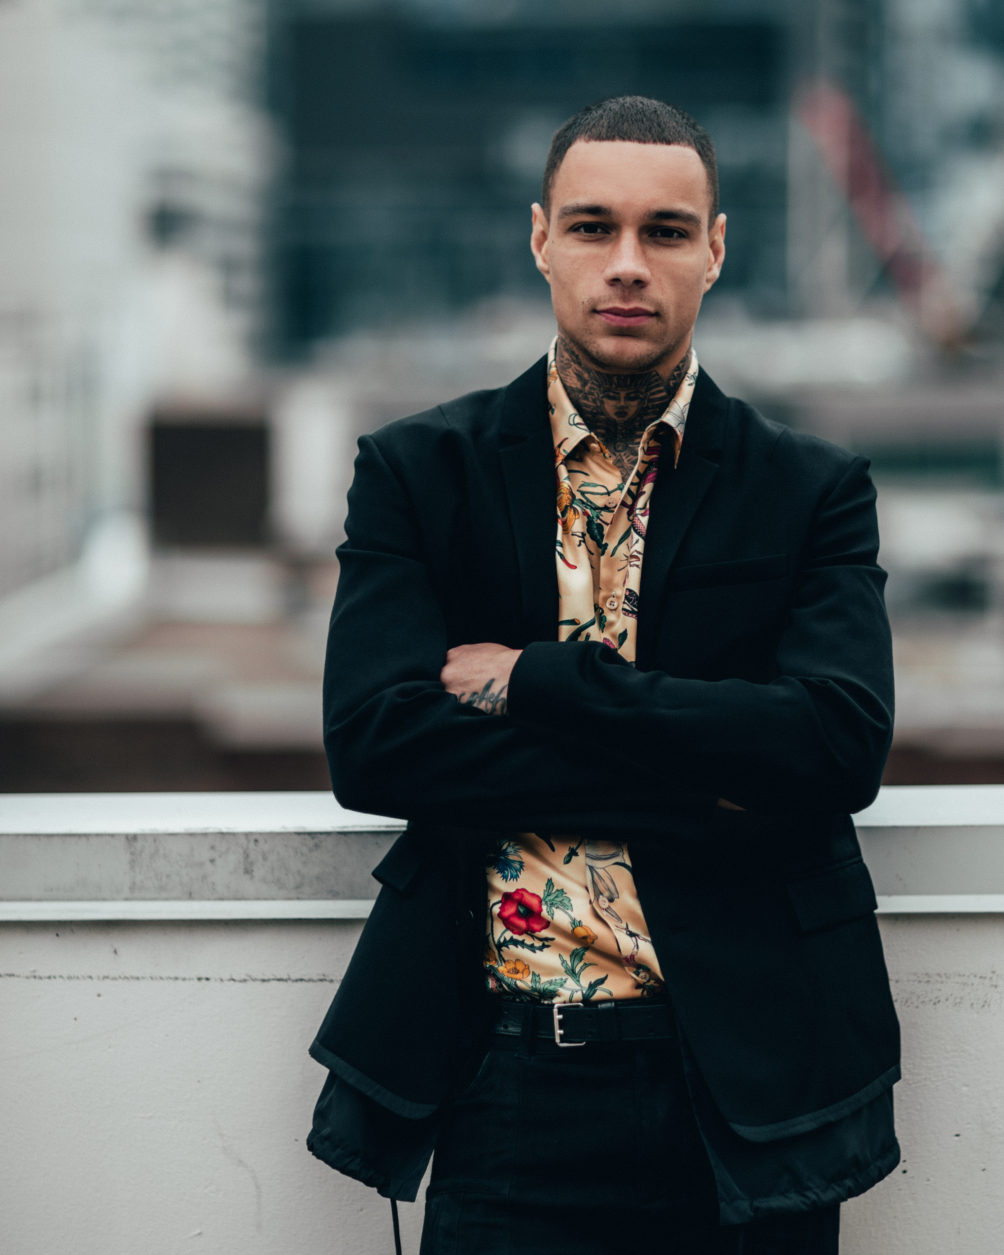 Gregory van der Wiel - Business